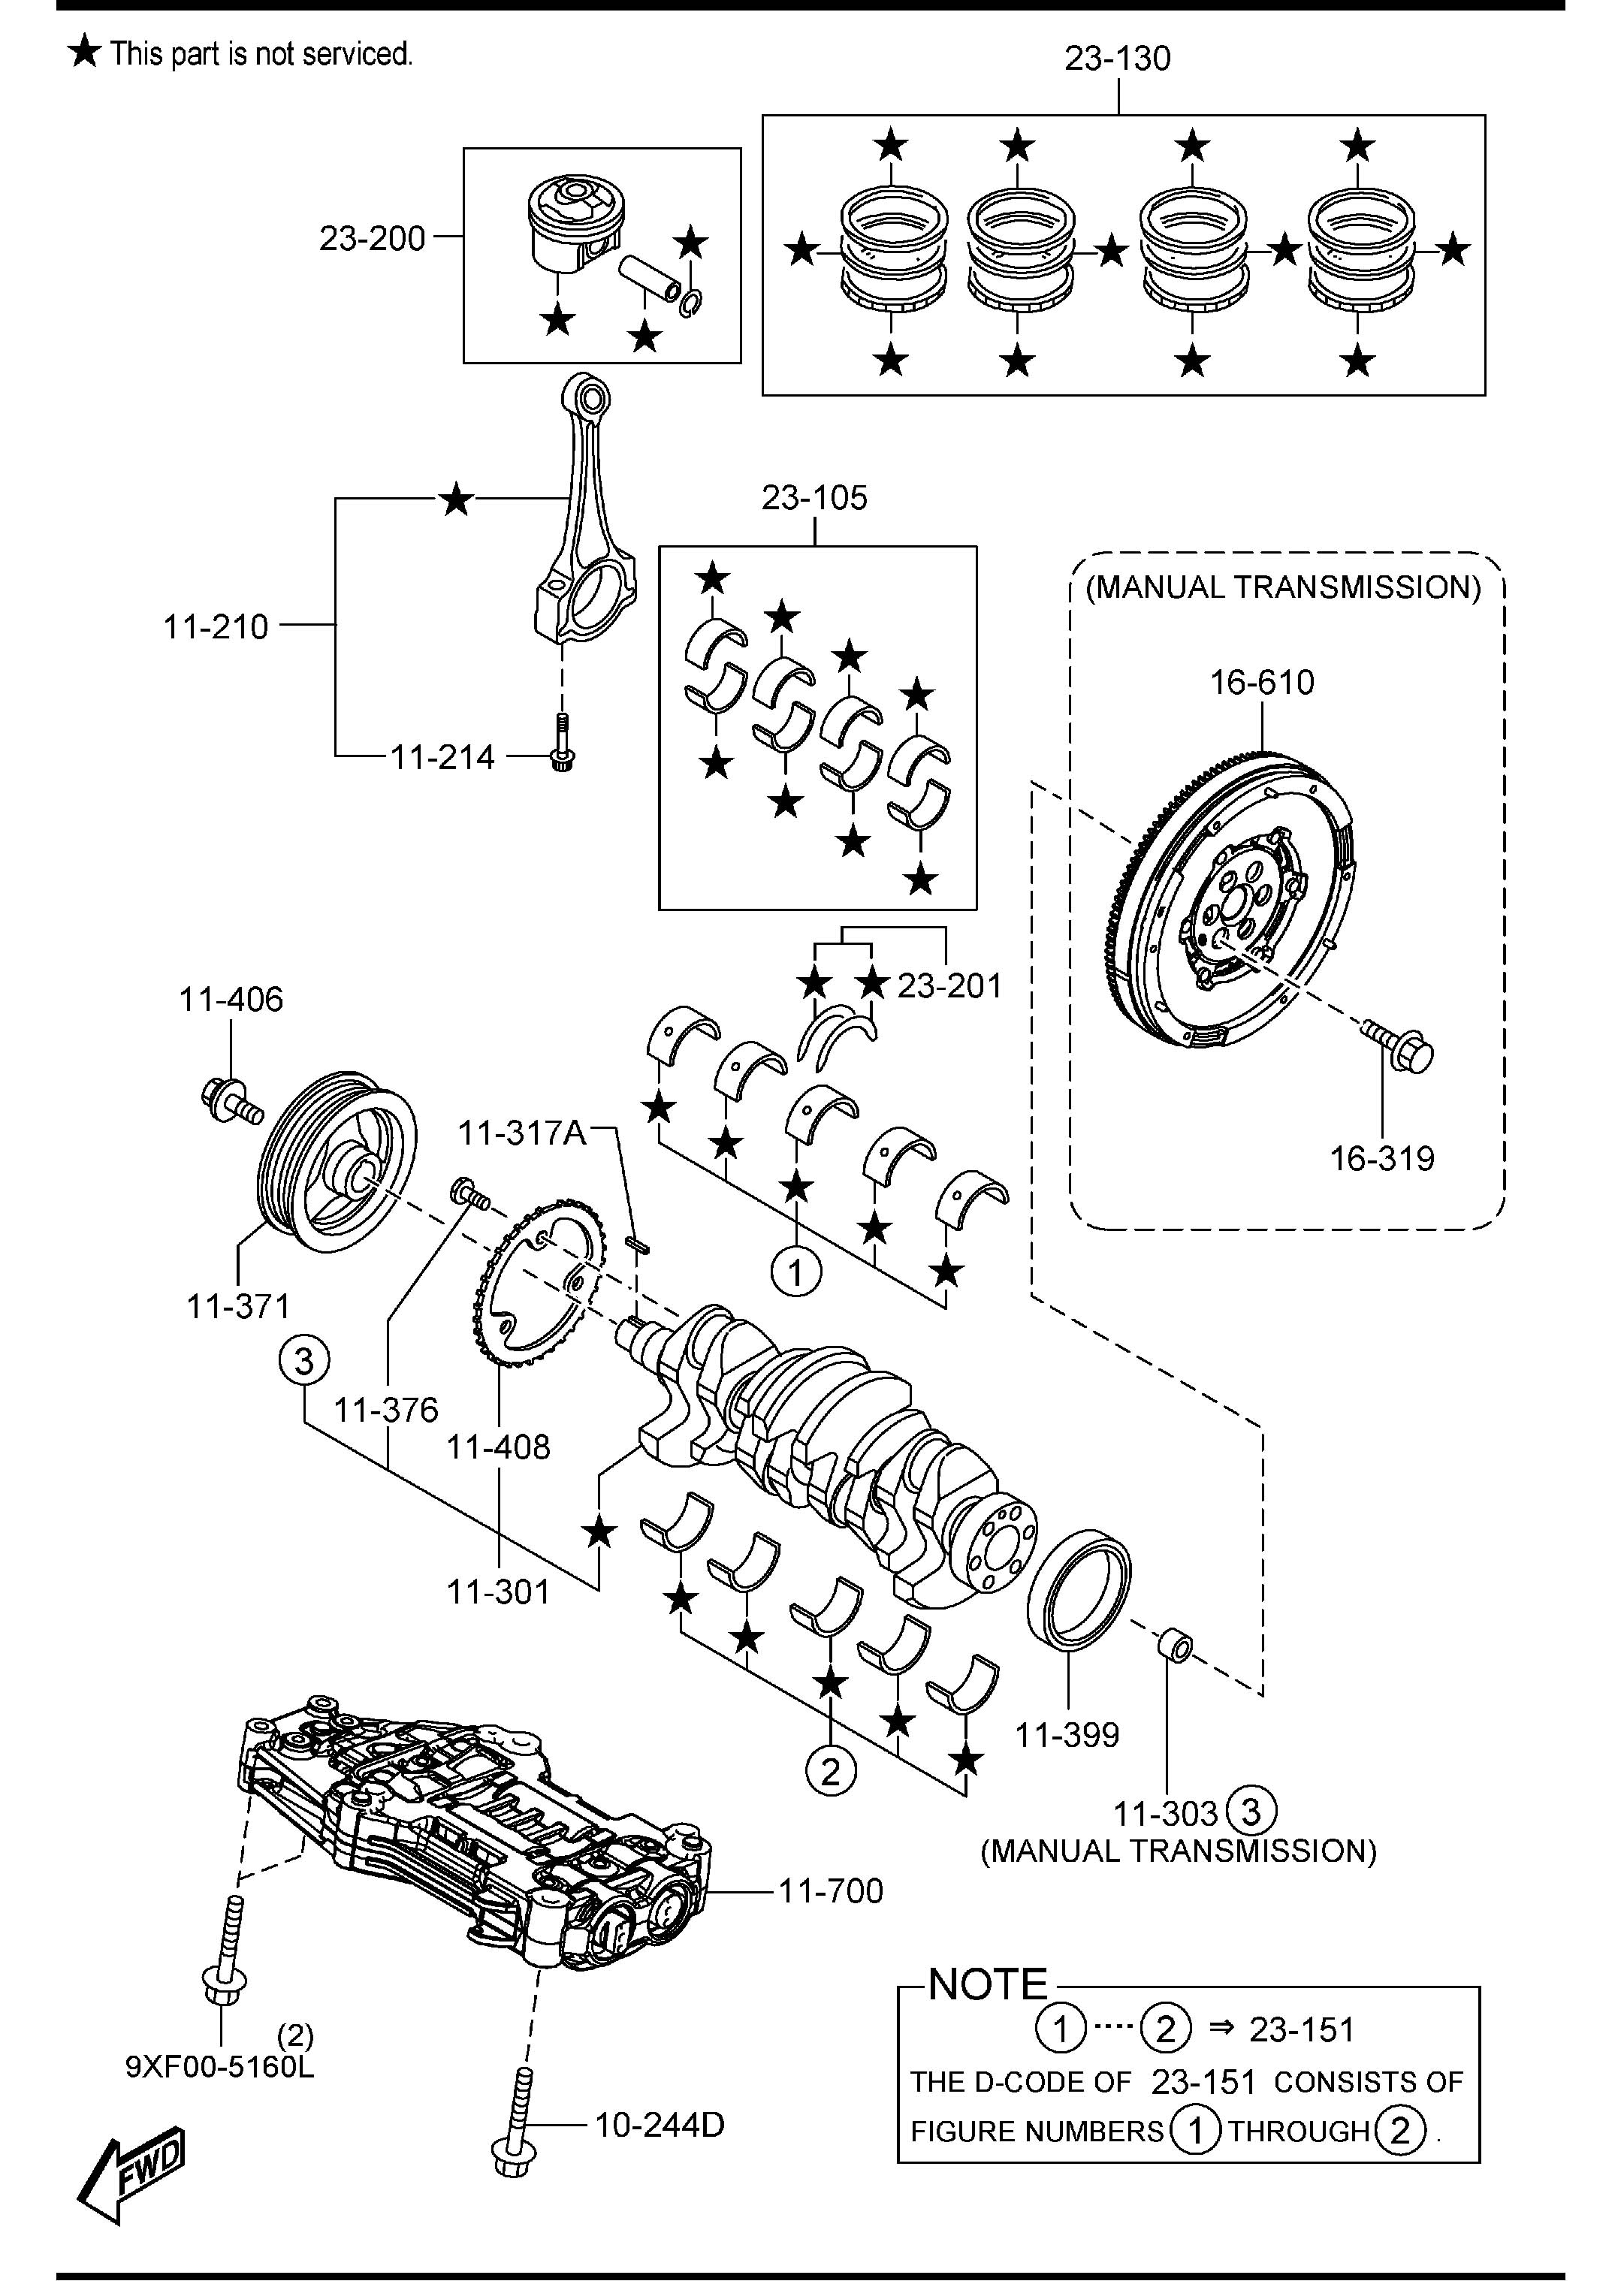 2470203 Crankshaft Flywheel And Alternator Diagram And Parts